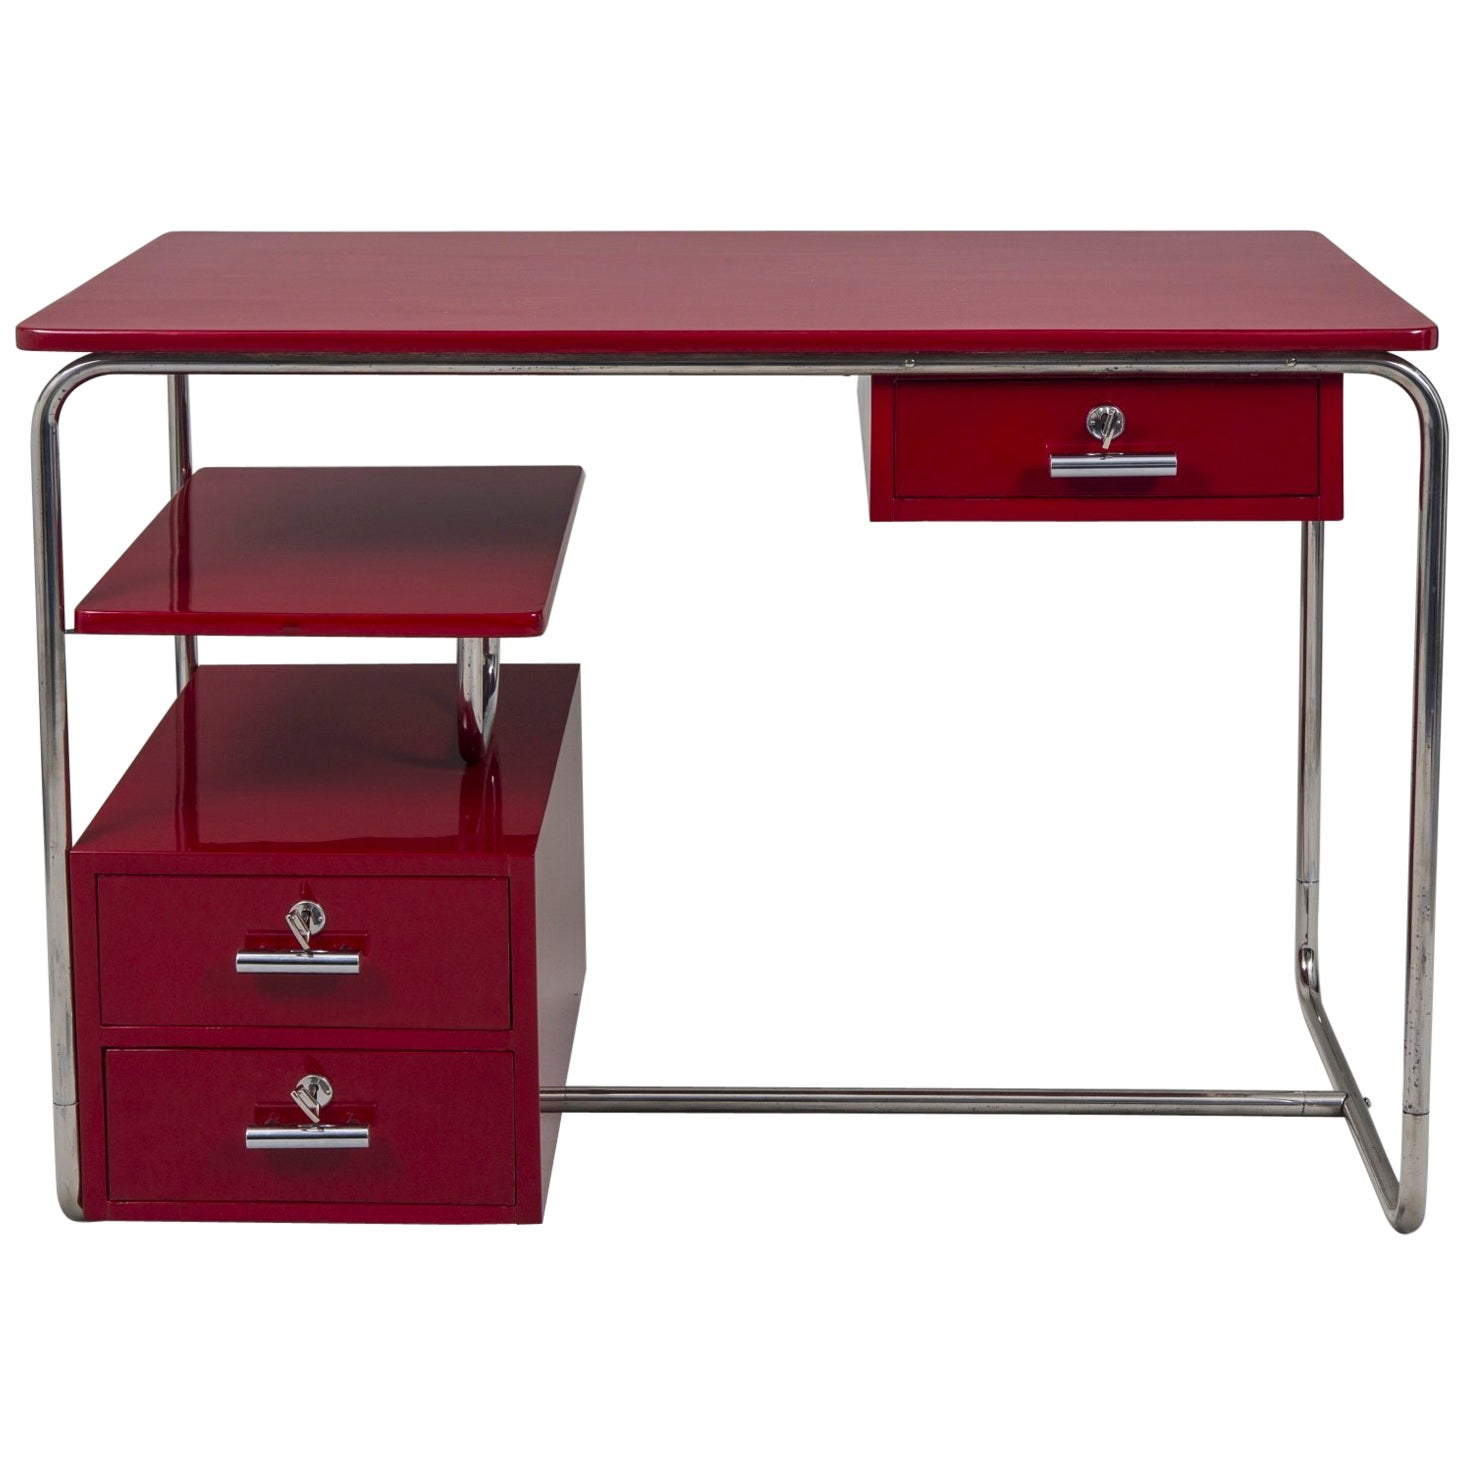 Completely restored funkcionalism Chrome Writing Desk from Germany 1930-1939